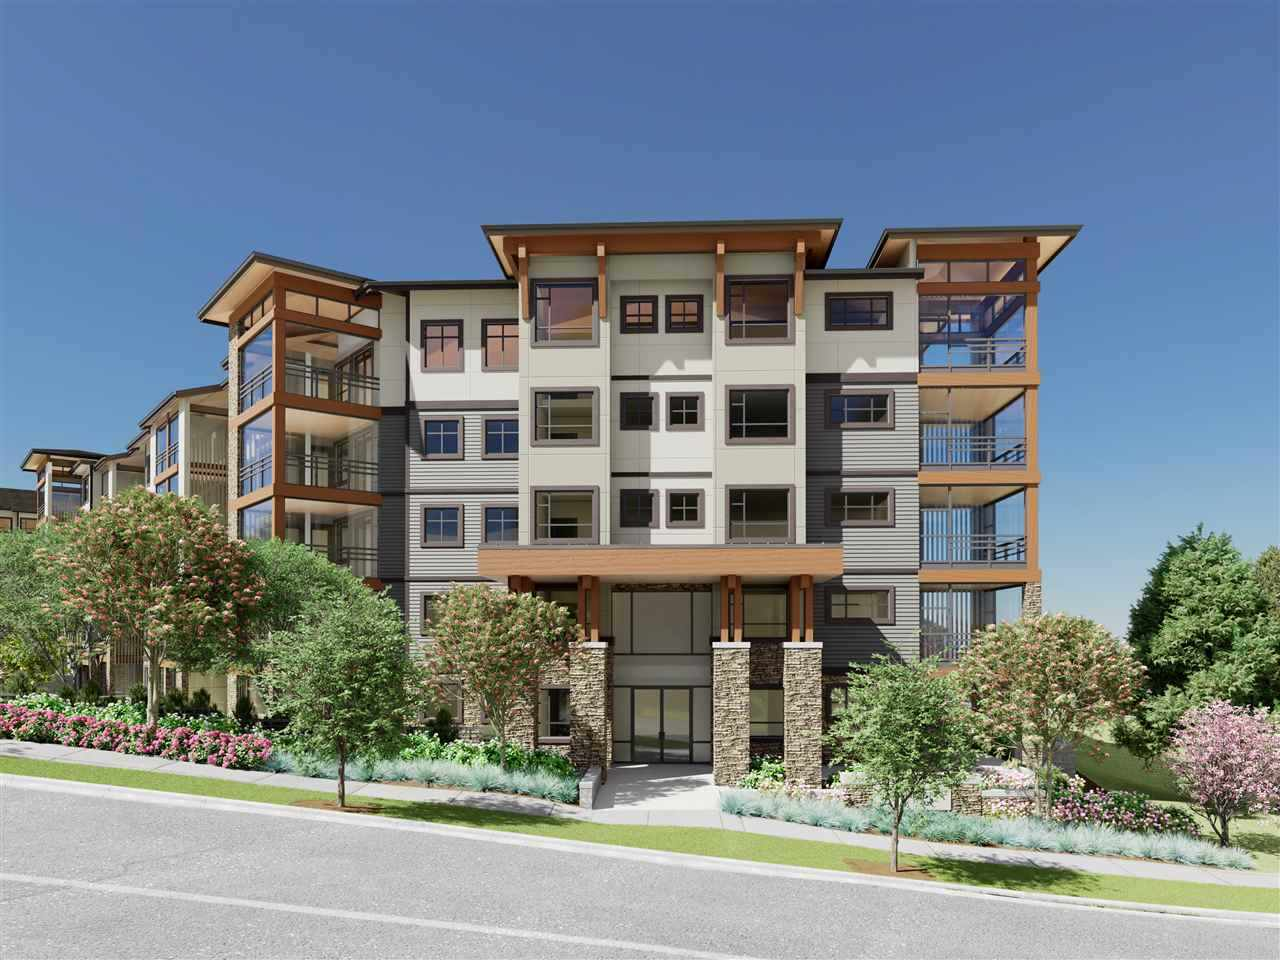 Finally here in South Surrey! This masterpiece condo from Quadra Homes will be ready by winter of 2020. This biggest unit offers everything you need for condo life. Very desirable executive 2 bedroom, 2 bath unit plus a den comes with quartz countertop, real wood paneled cabinets, energy efficient, high end appliances including energy-efficient heat pump, sound-dampening acoustic package, 2 parkings with one storage garage. Close to Crescent beach, Park & Ride, Hwy 99 and King George Blvd.